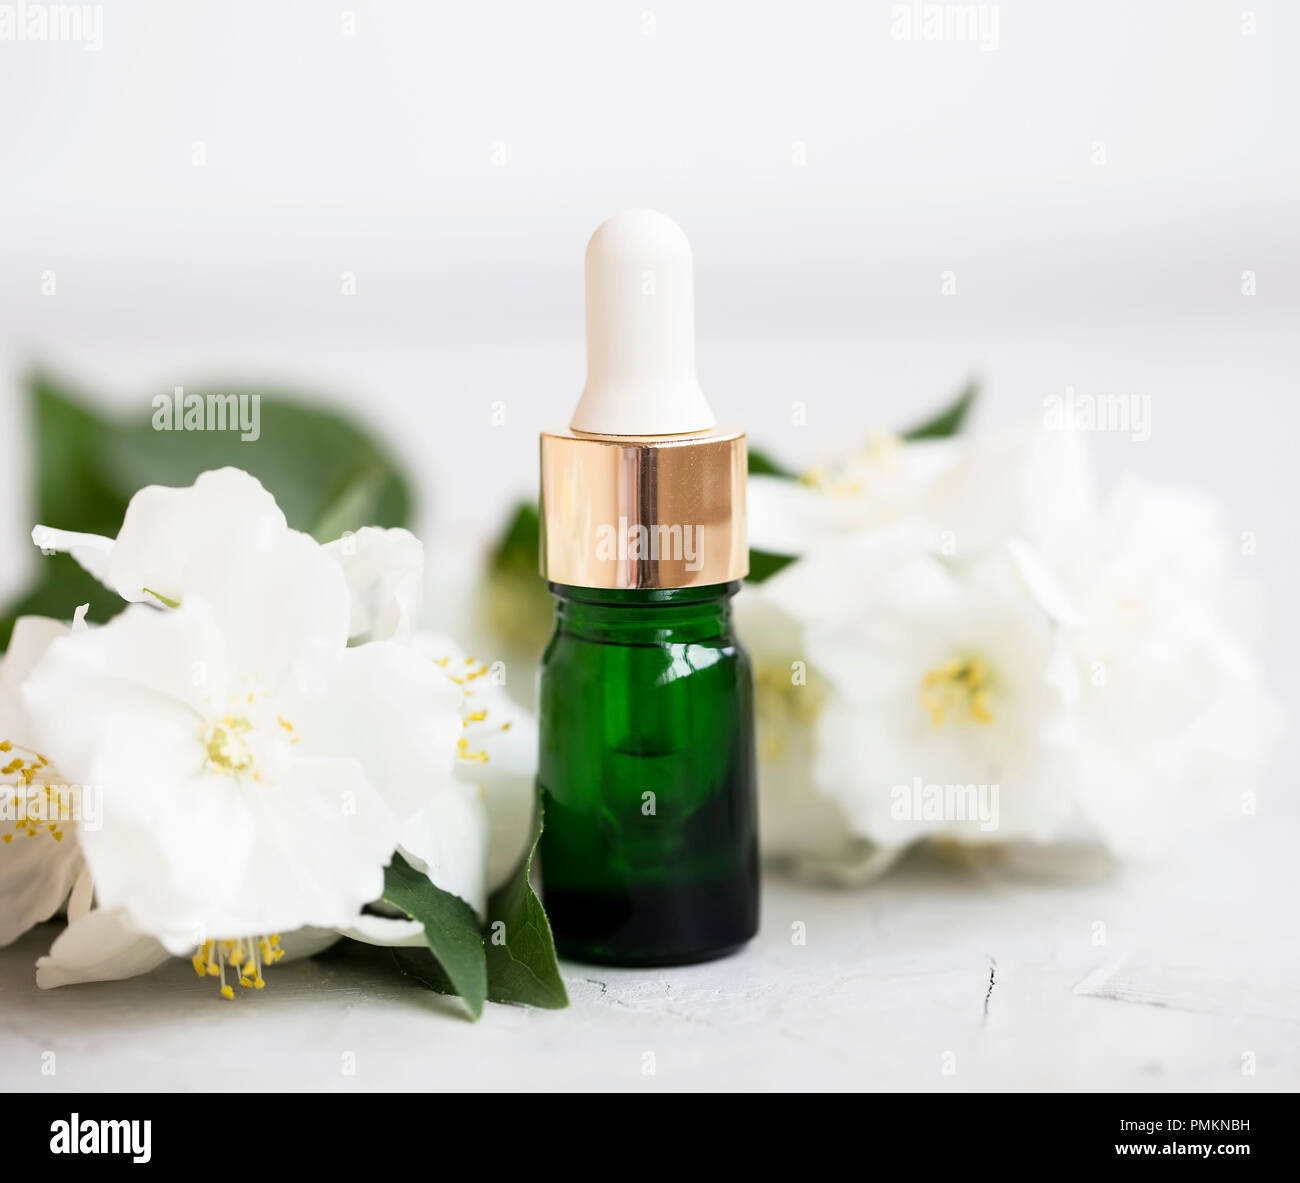 Jasmine oil bottle with flowers, natural aromatherapy oil Stock